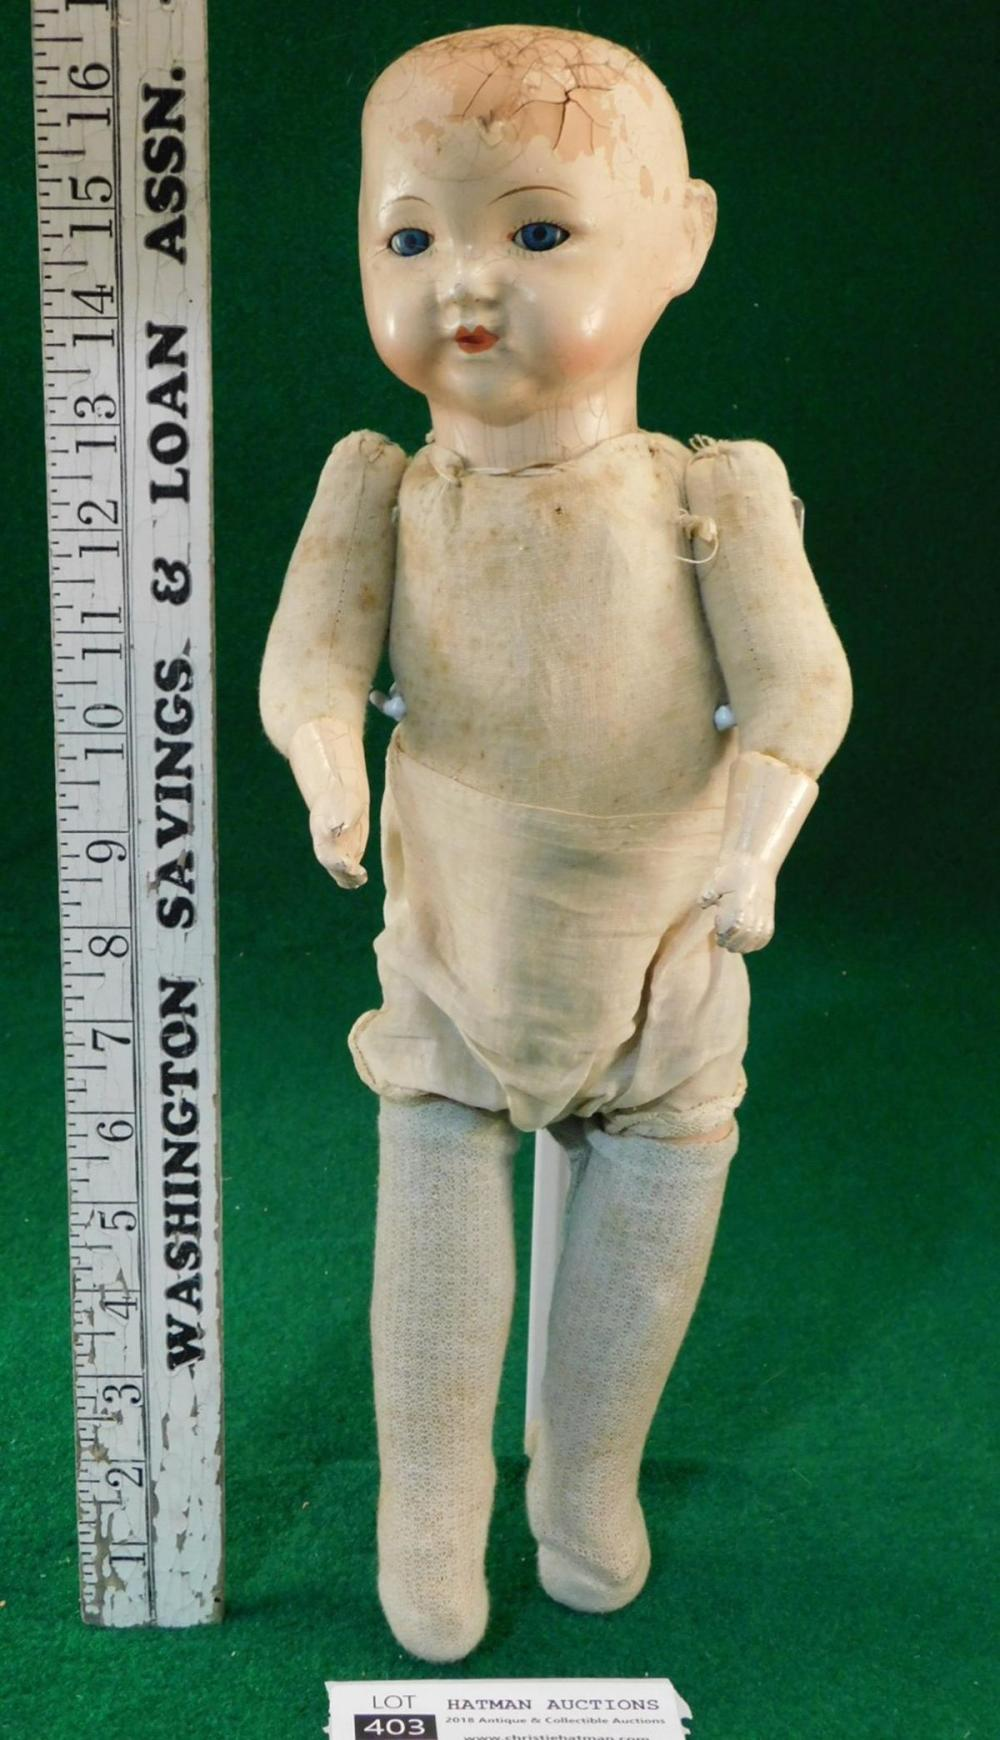 ESTATE VINTAGE ANTIQUE DOLL COLLECTION SEE PHOTO